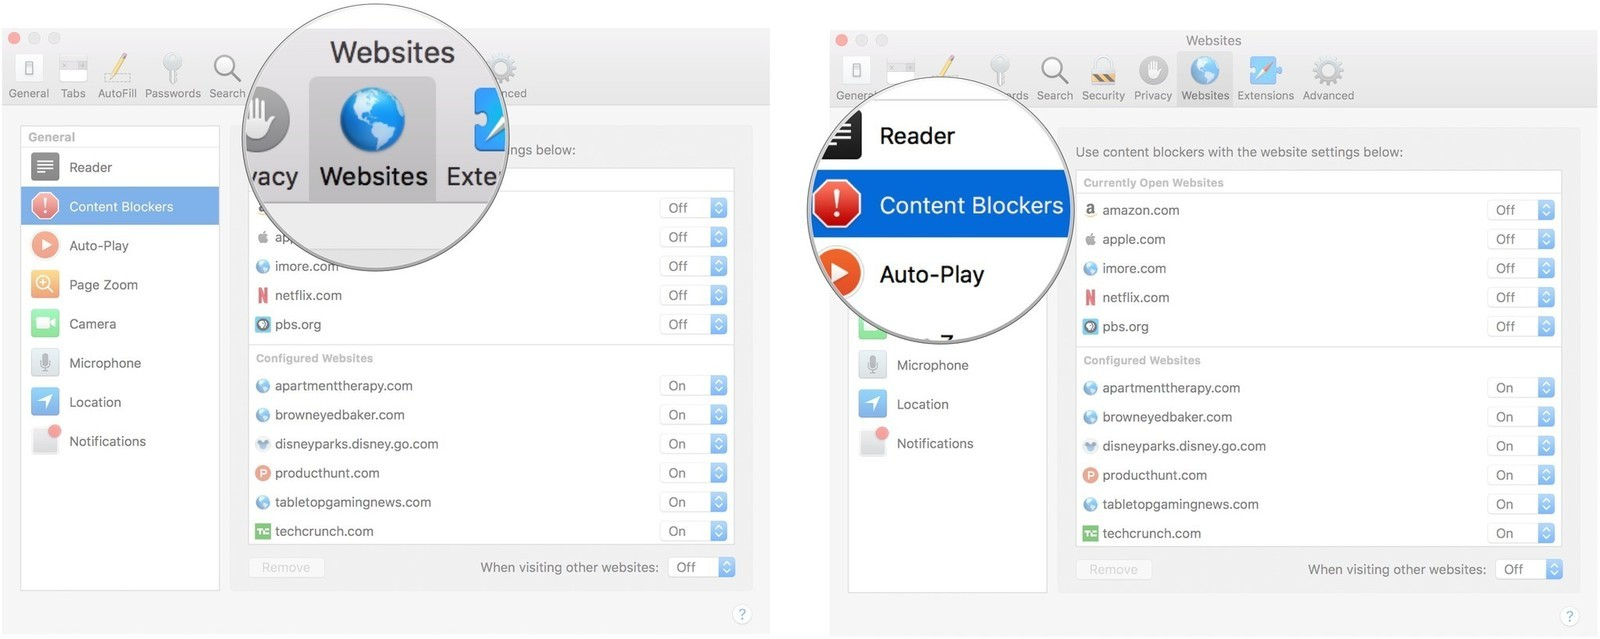 Select Websites, then Content Blockers